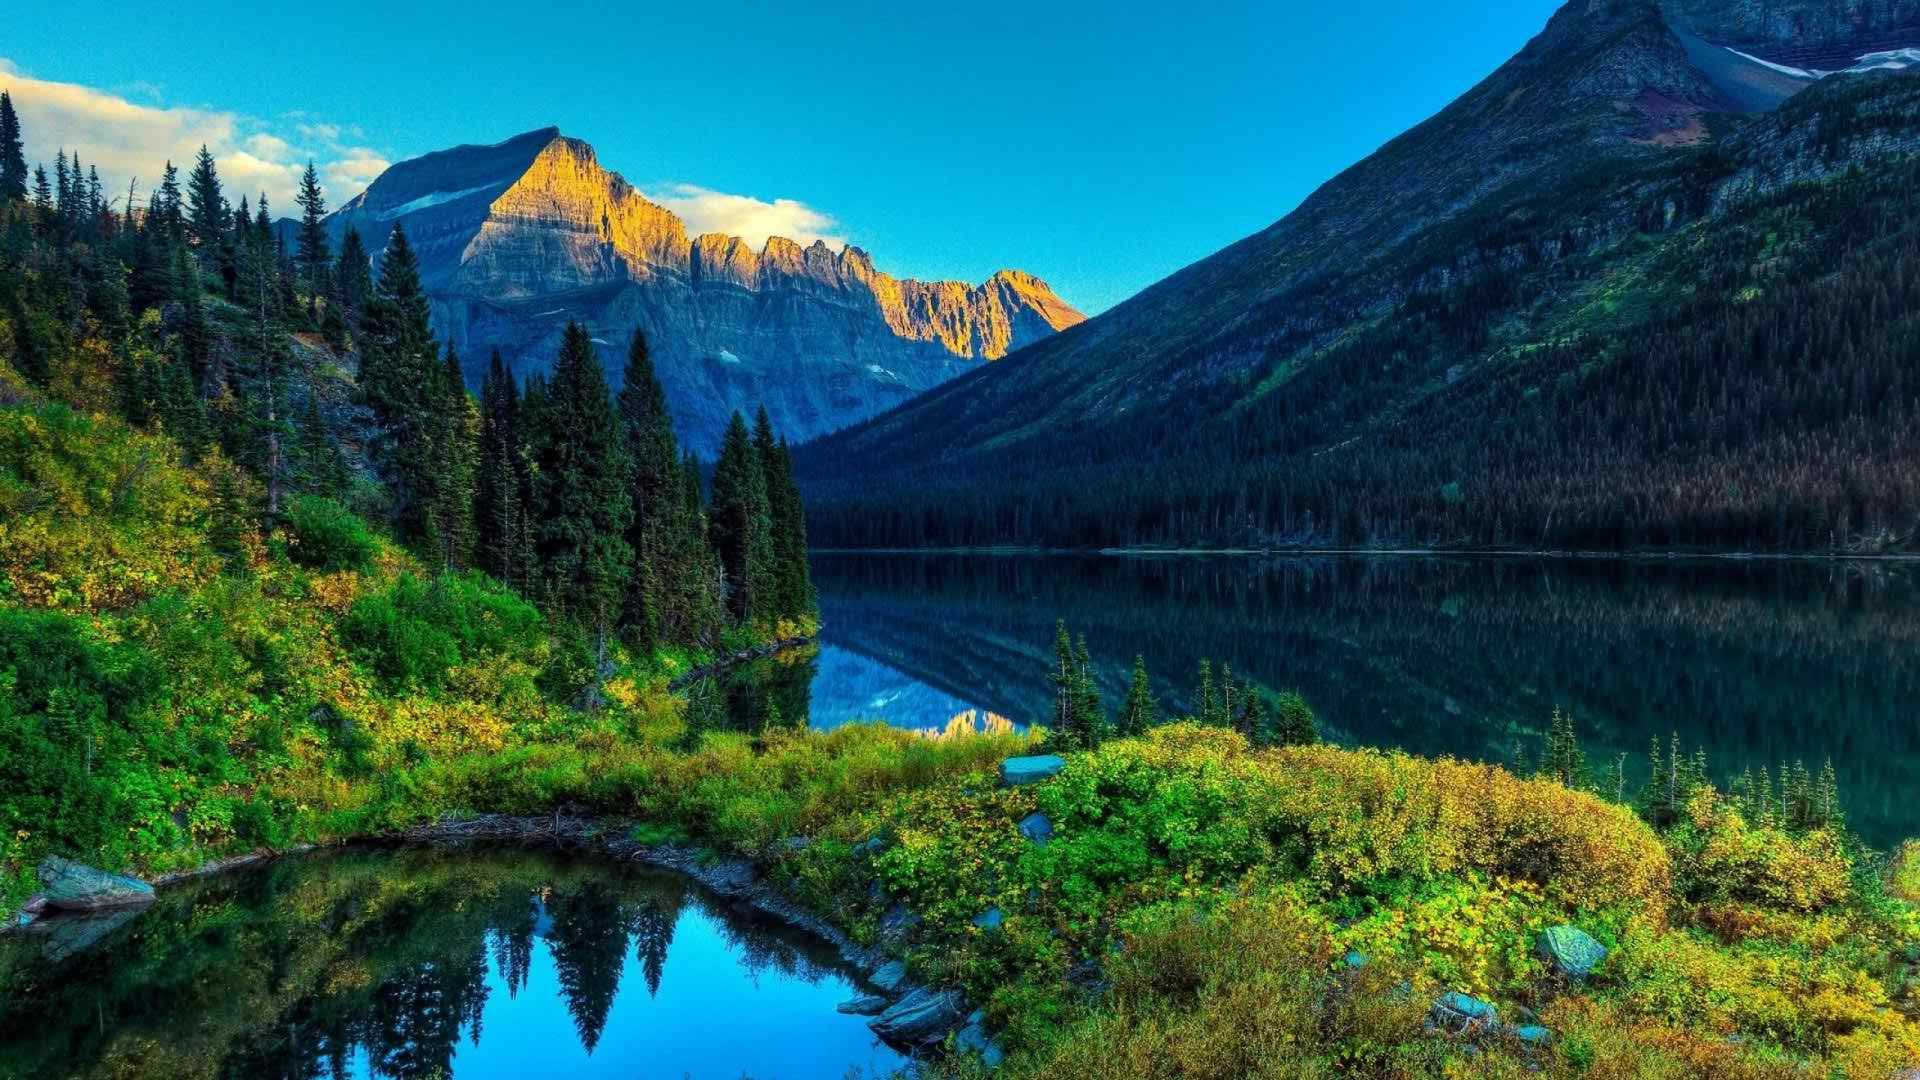 High Quality Wallpapers Scenery Wallpaper Landscape Wallpaper